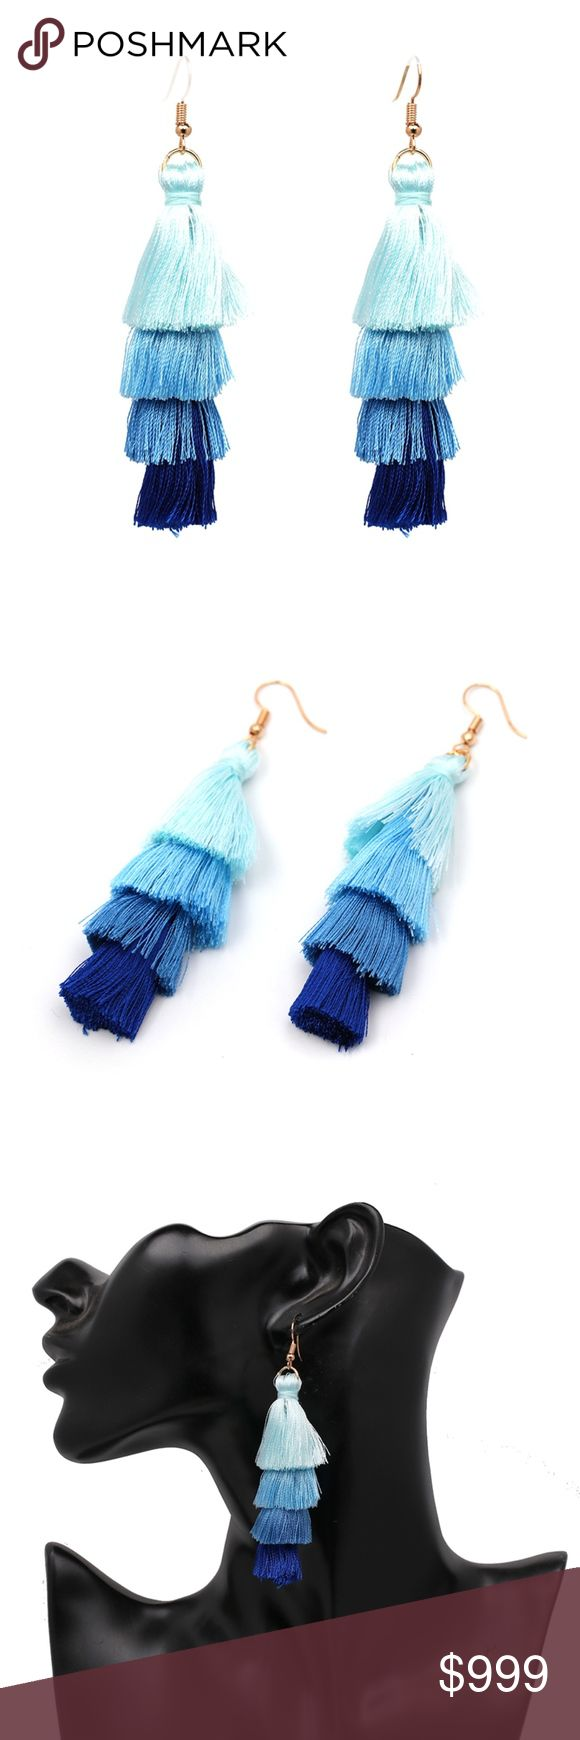 COMING SOON!! Blue Ombré Fringe Tassel Earrings Coming Soon!! (Price available upon arrival). Brand new in original packaging. Boho ombré fringe tassel statement earrings perfect for music festival apparel, a coachella necessity, or bring on a tropical vacation! The dangling ombre fan tassels feature sky blue, aqua, cerulean, & navy colors made of lightweight cotton thread.  Gold tone hook backings.  Multiple colors available! Jewelry Earrings